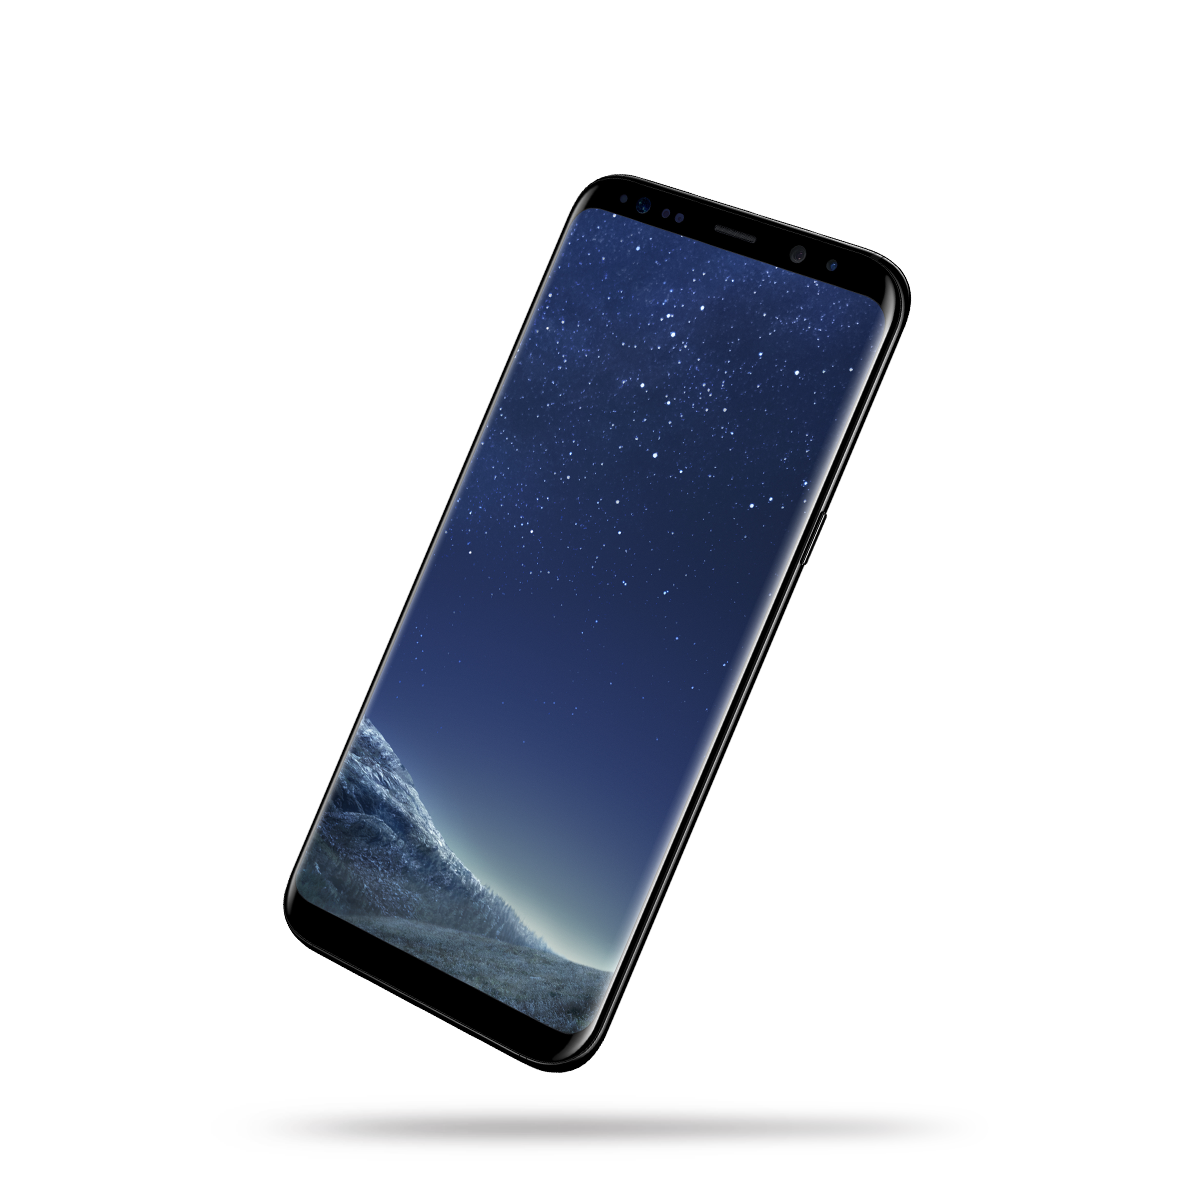 The Samsung Galaxy S8 Mobile Phone Has Arrived Videotron